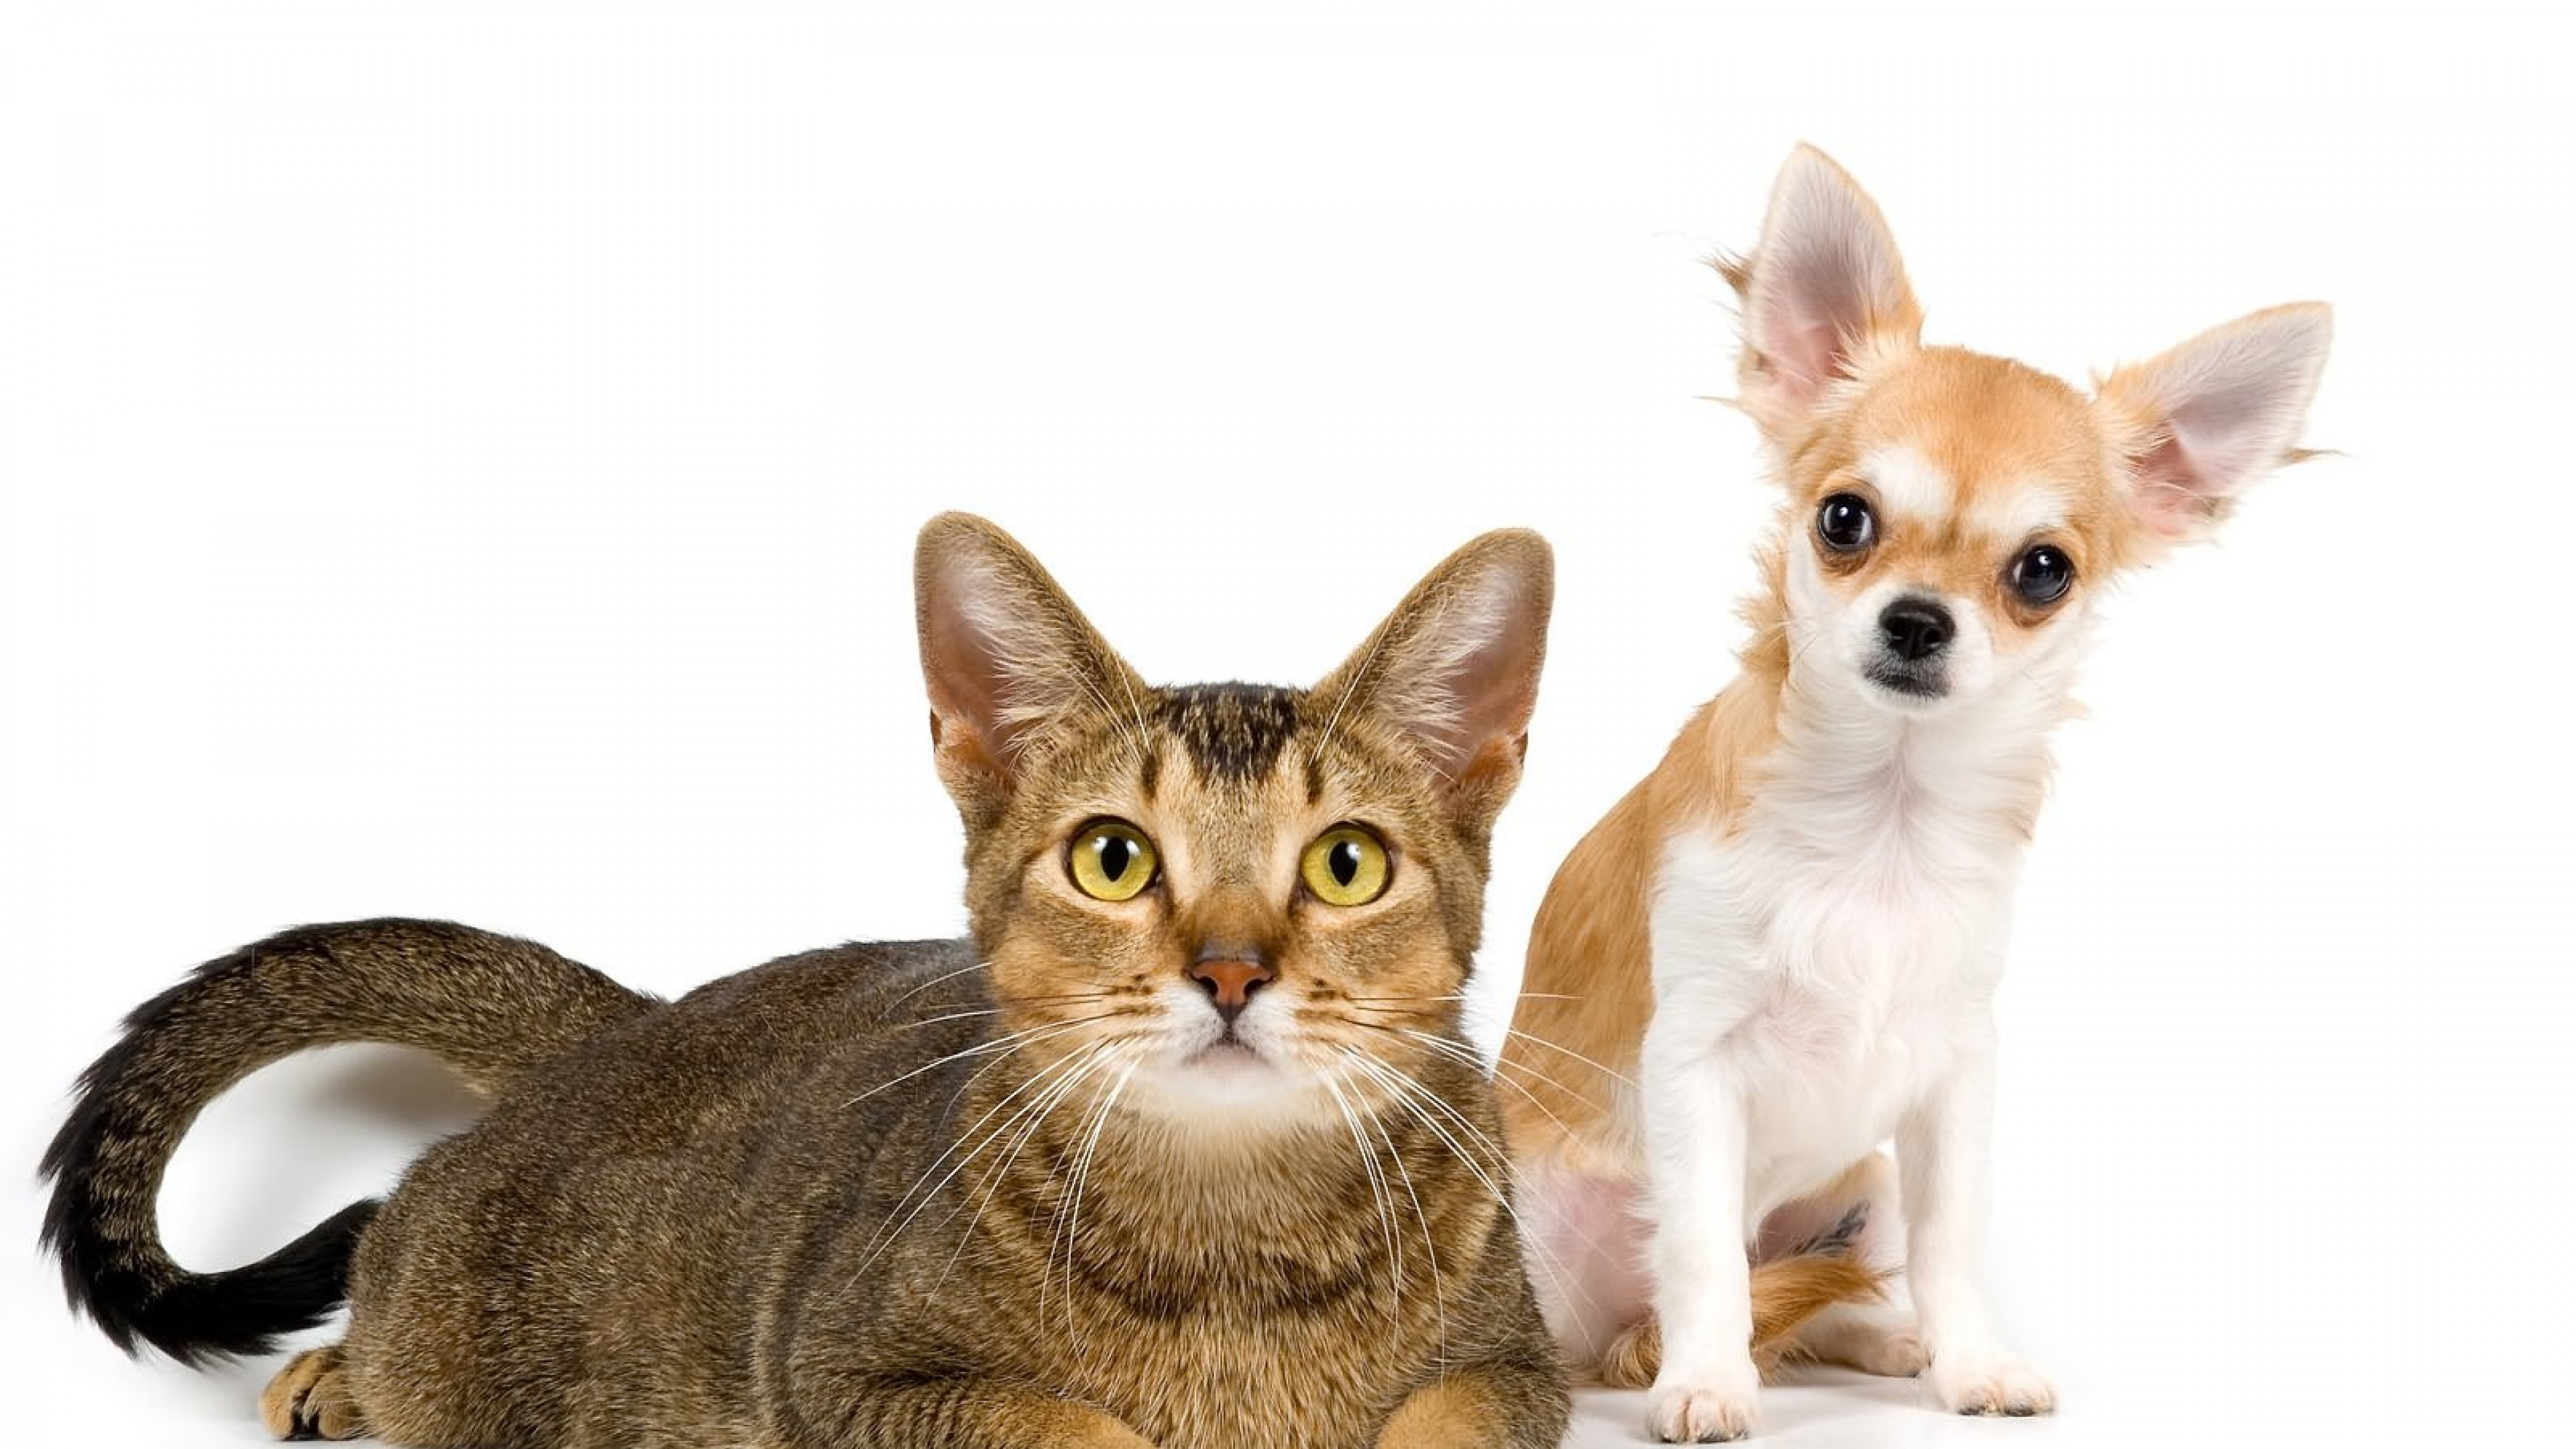 3840x2160  Wallpaper cat, dog, friends, couple, photo shoot